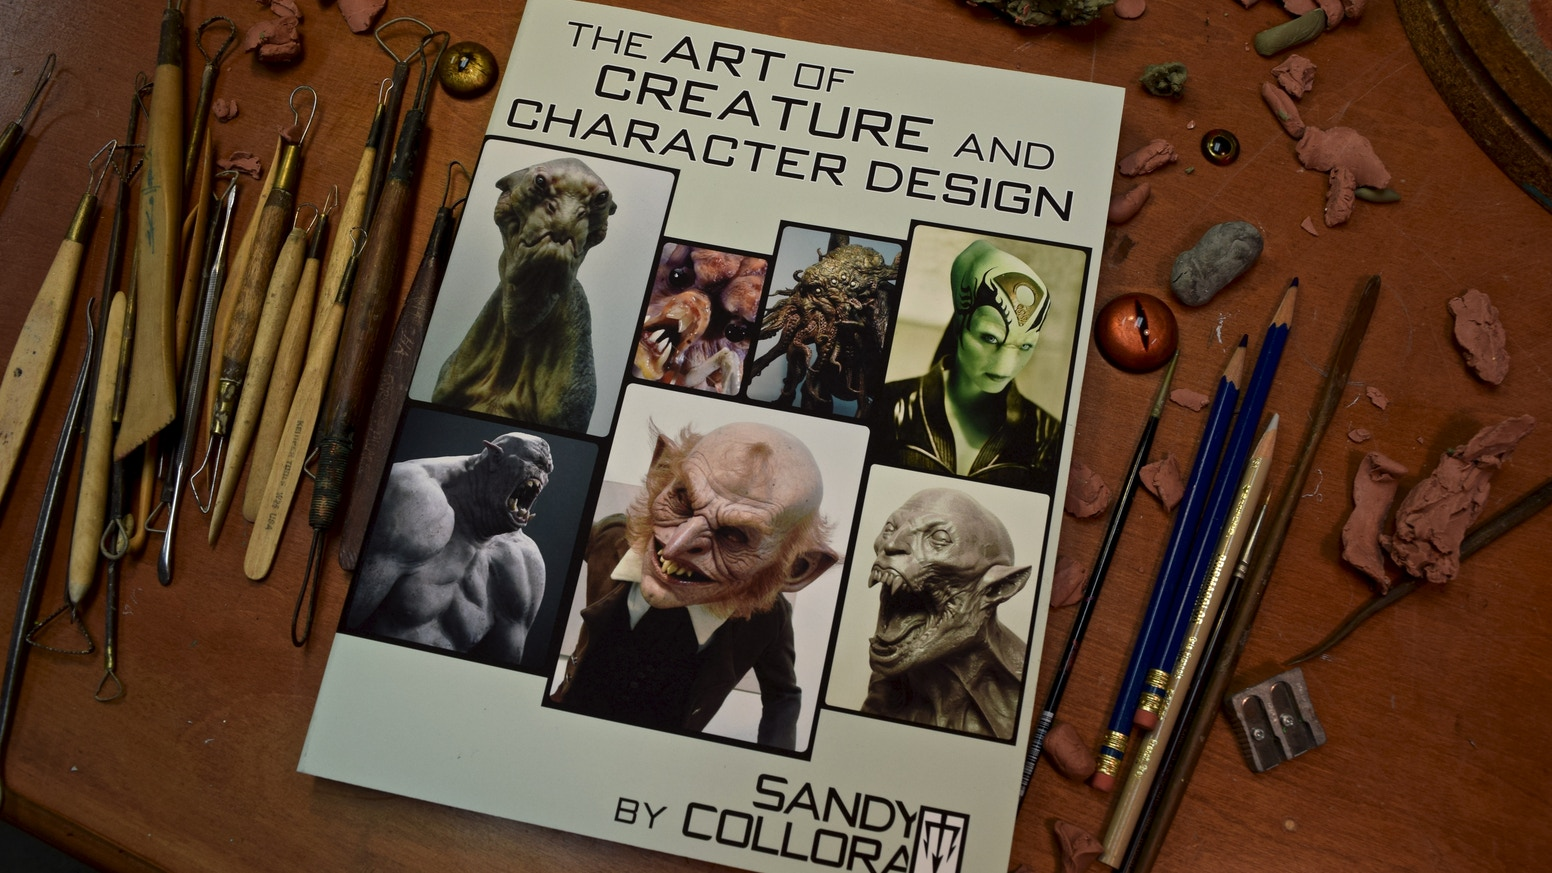 An art book about the style and sensibilities of creature and character design for motion pictures, television, video games and toys.